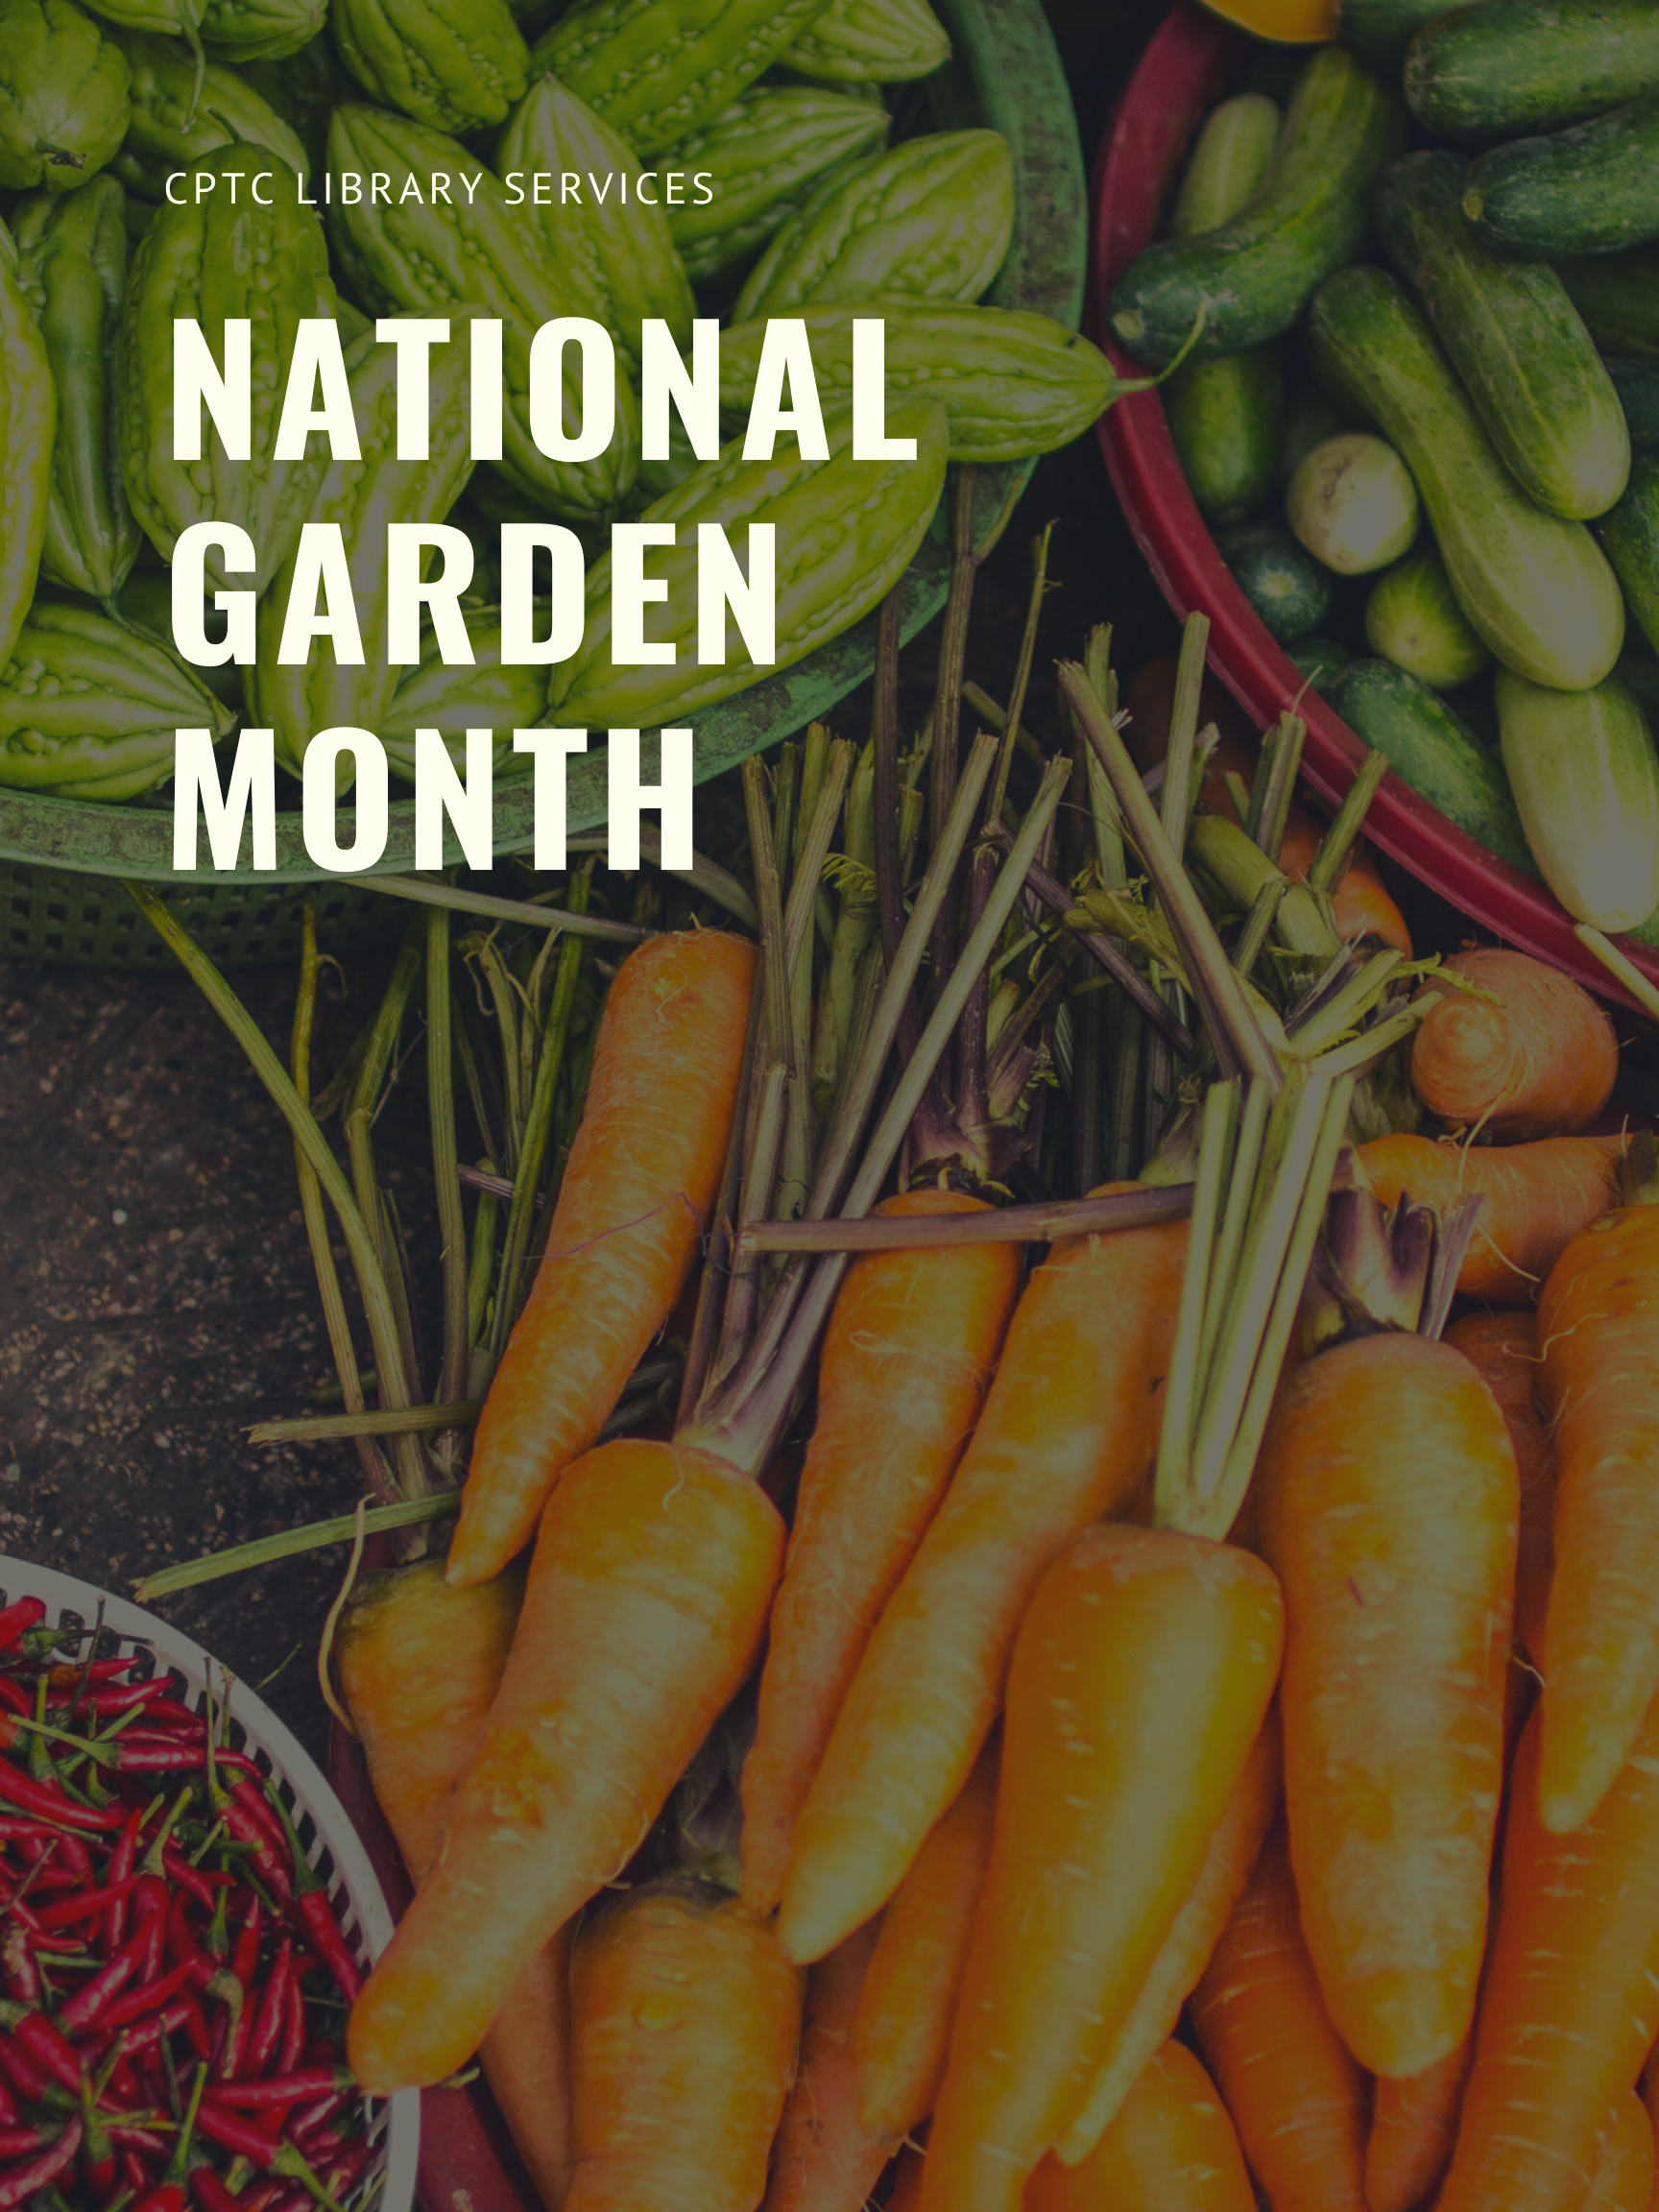 CPTC Library Services National Garden Month poster with image of fresh vegatables